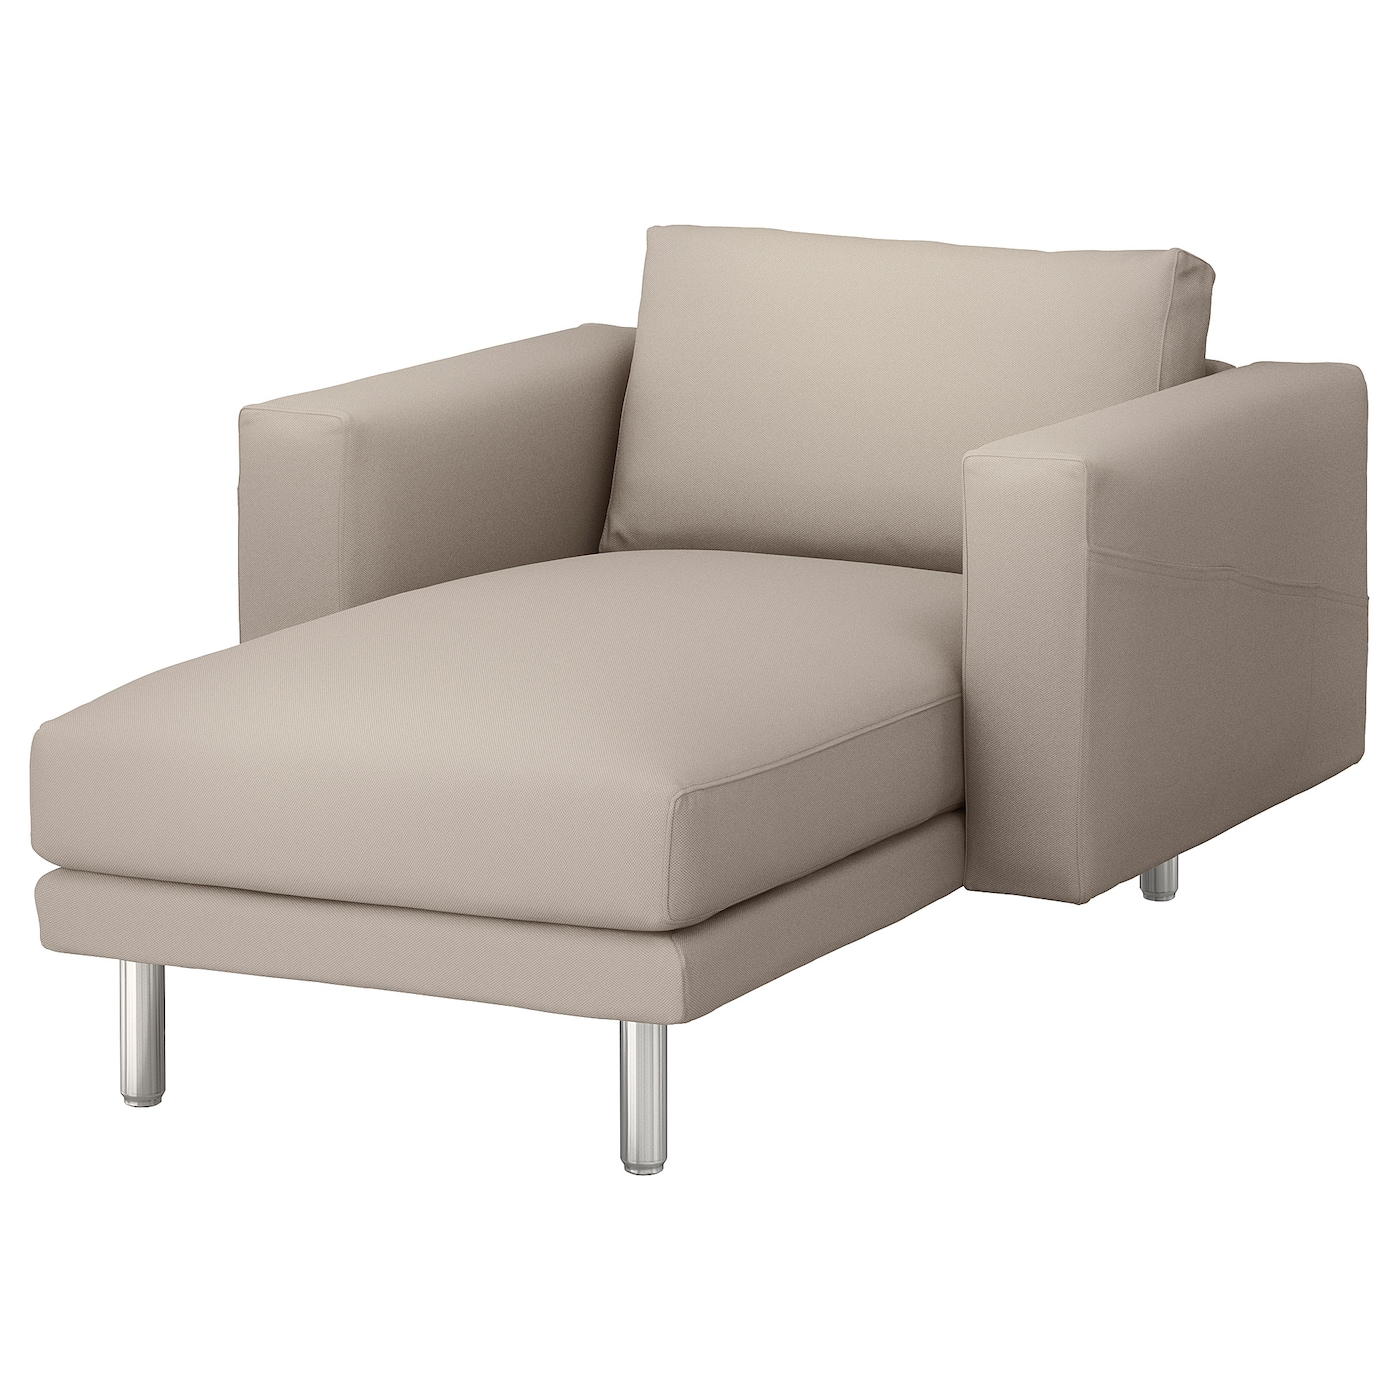 chaise lounge sofa ikea images